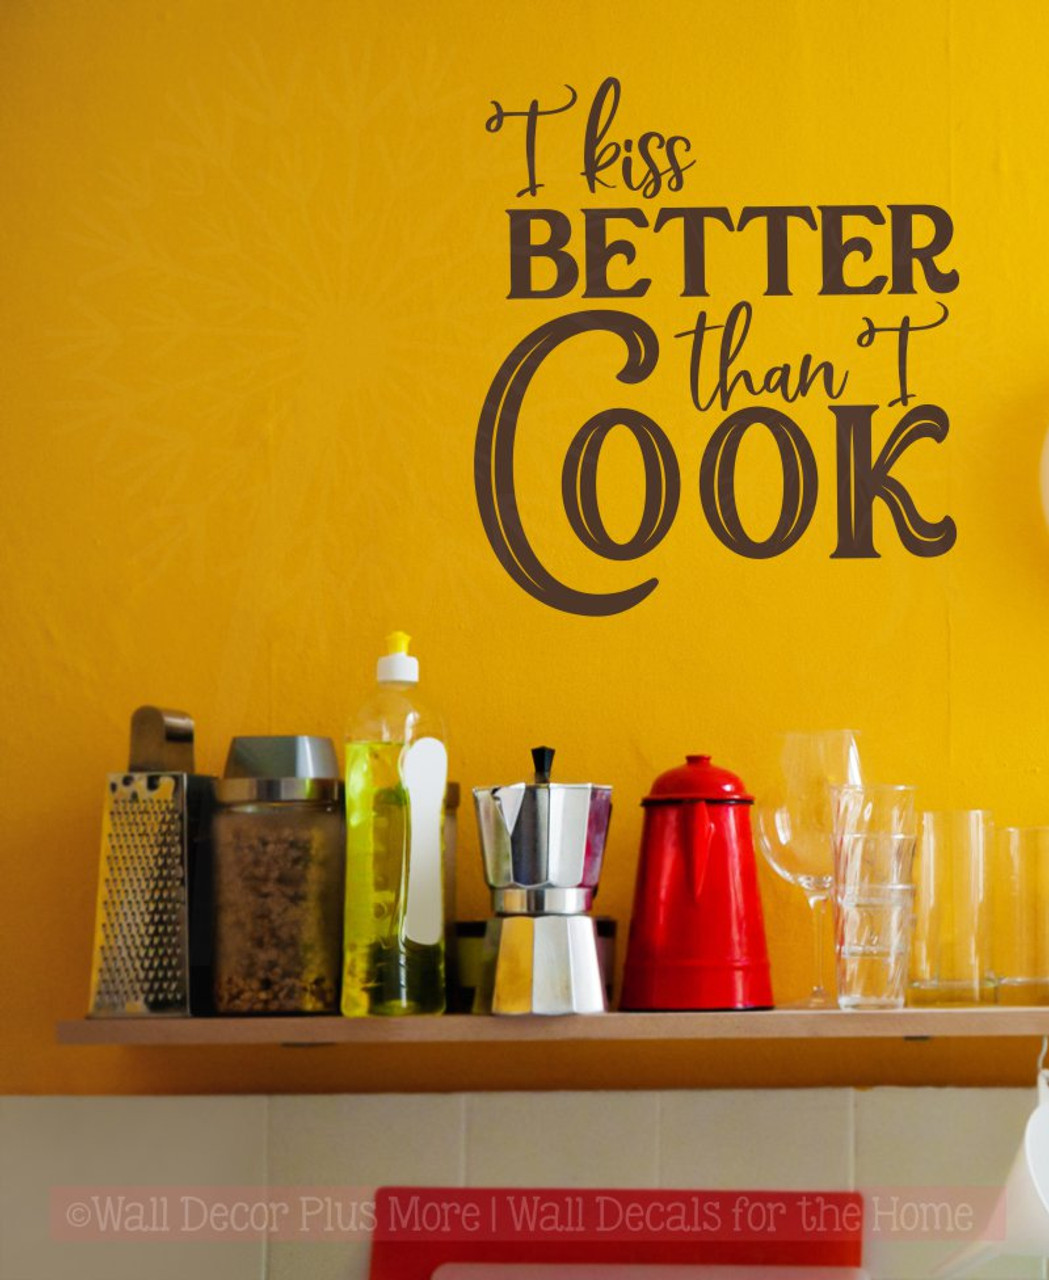 Kiss Better Than I Cook Kitchen Quote Vinyl Stickers Wall Decor Decals